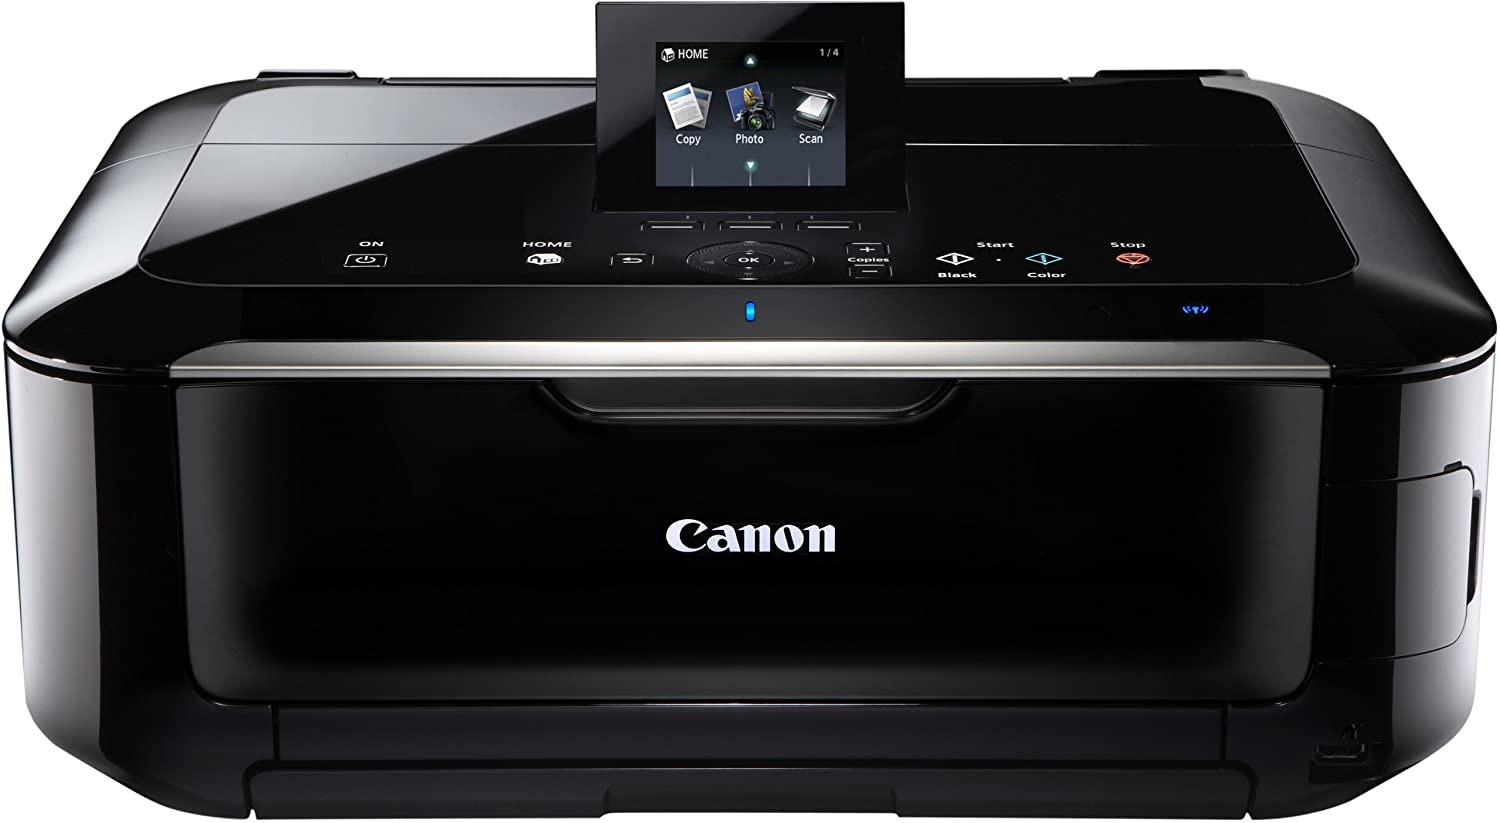 CANON MG5350 DRIVER FOR WINDOWS 7